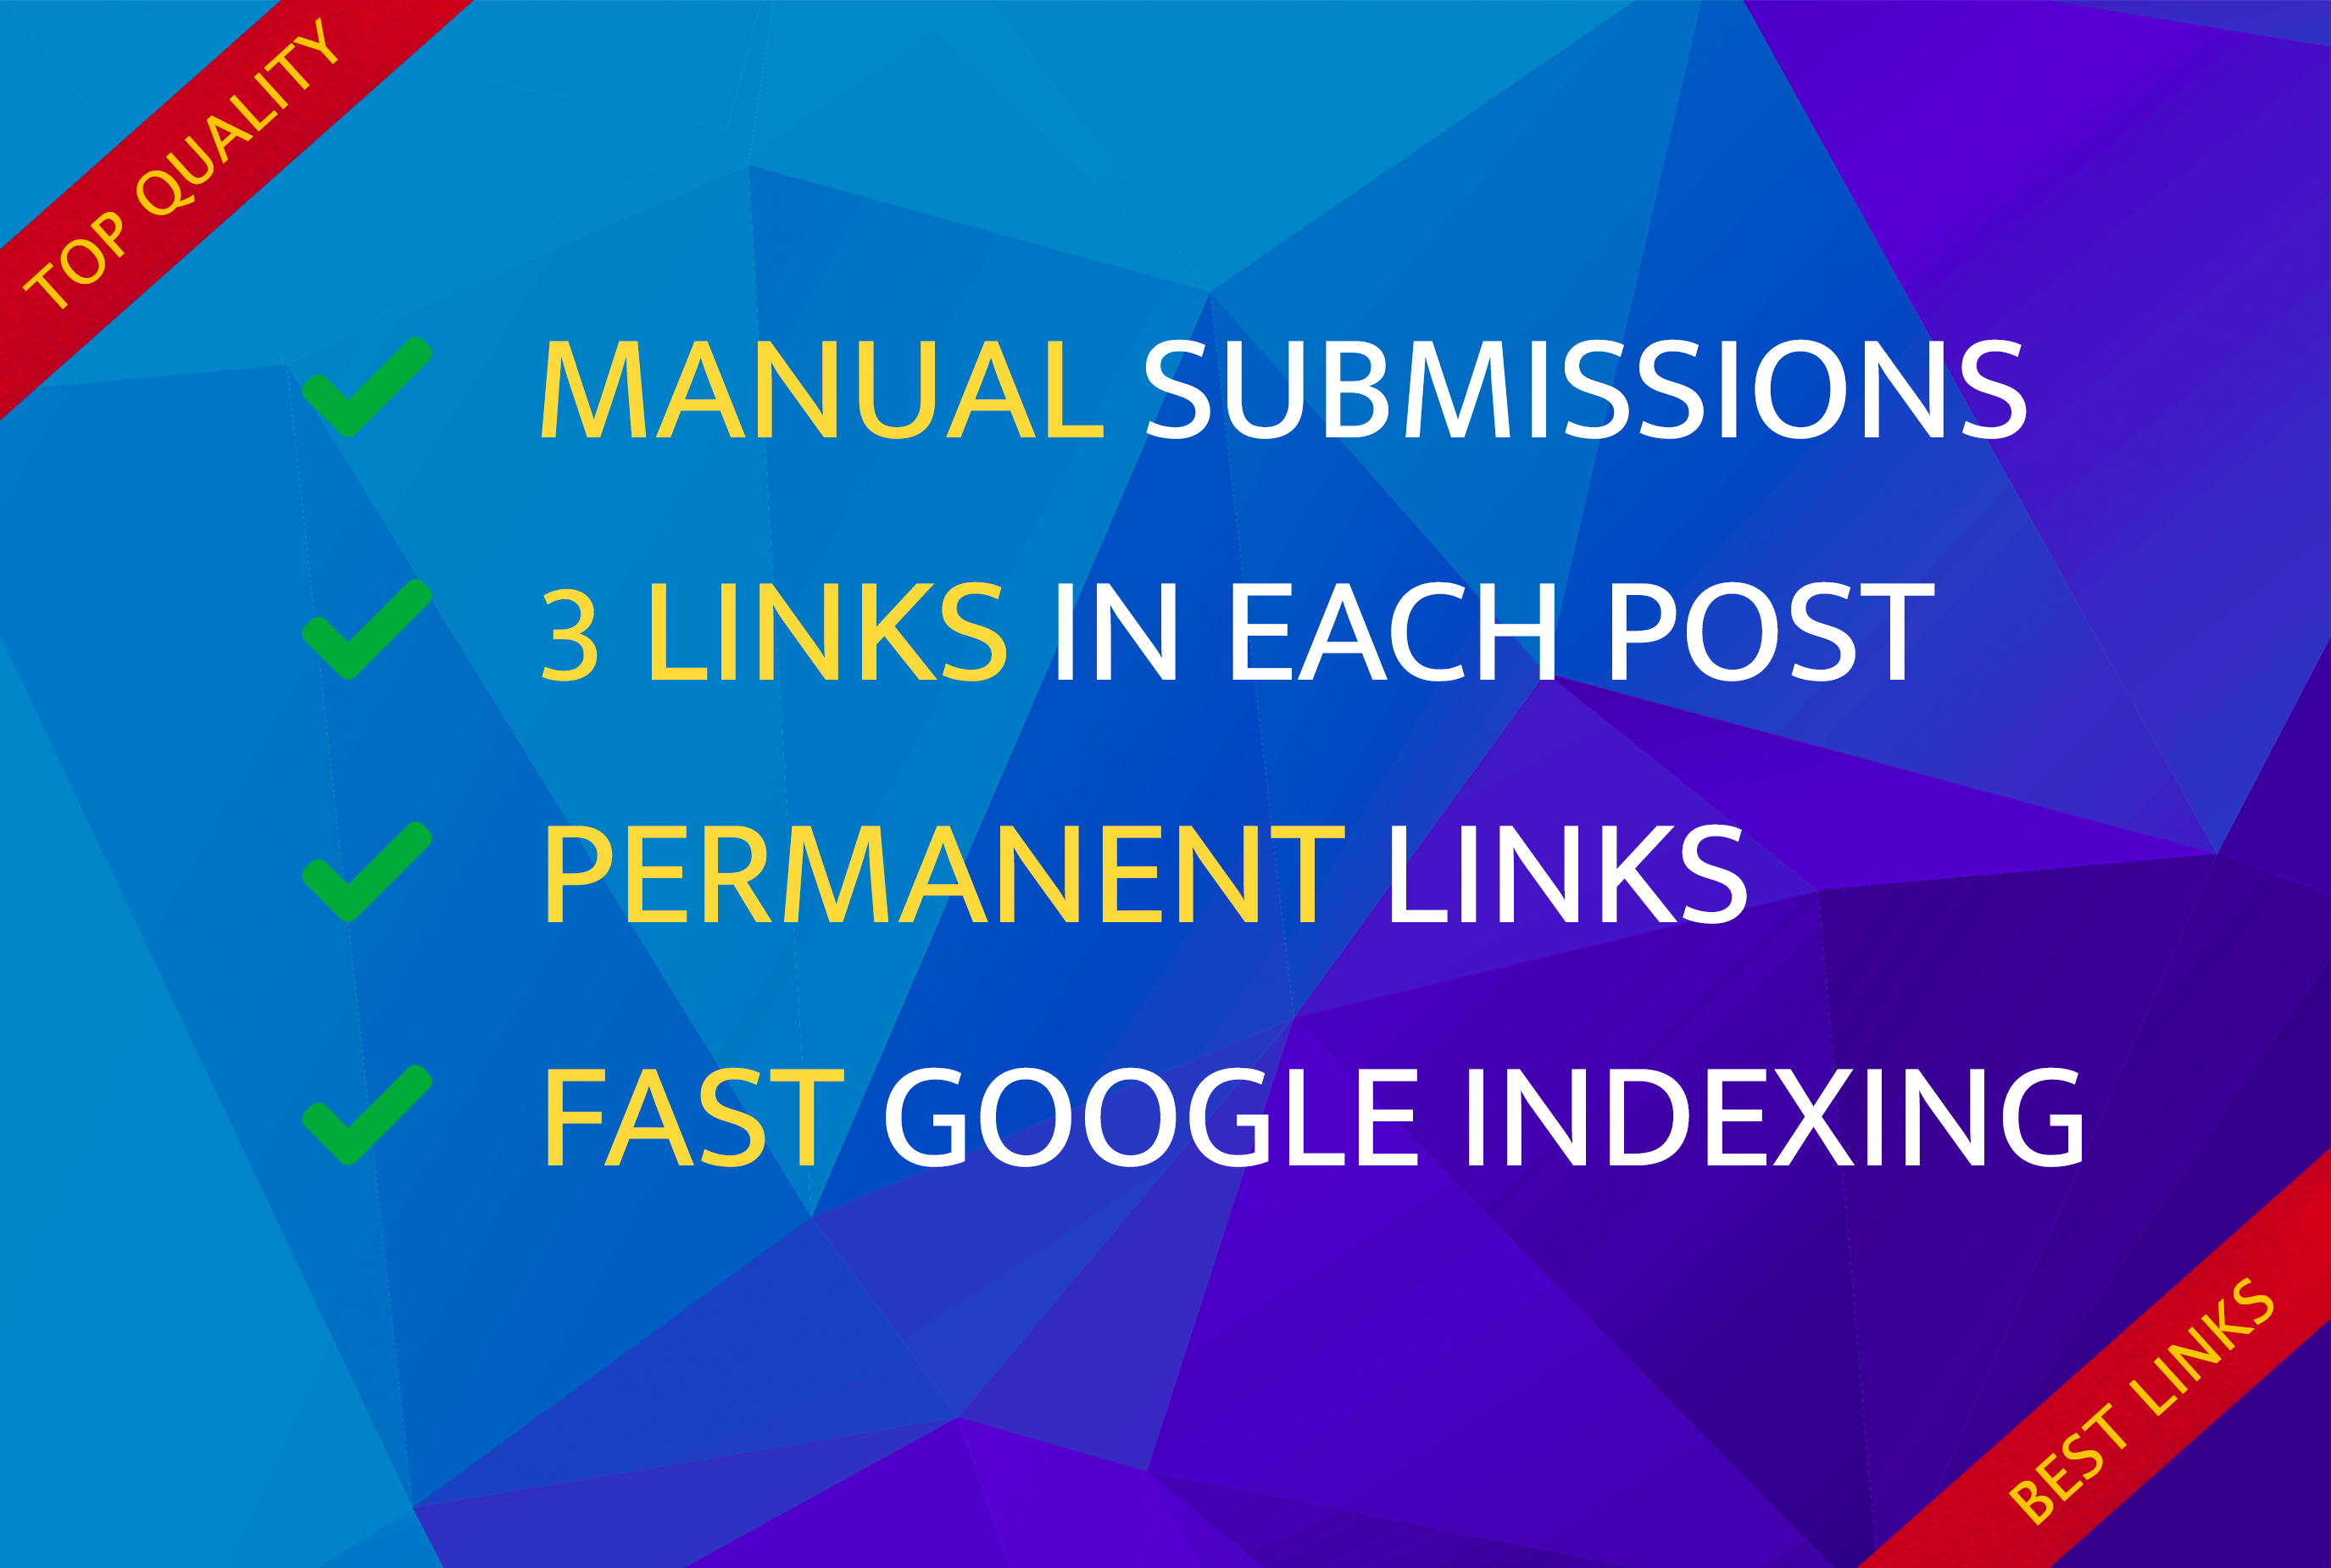 Manual submissions 100 blog posts and 300 backlinks english seo link building pbn